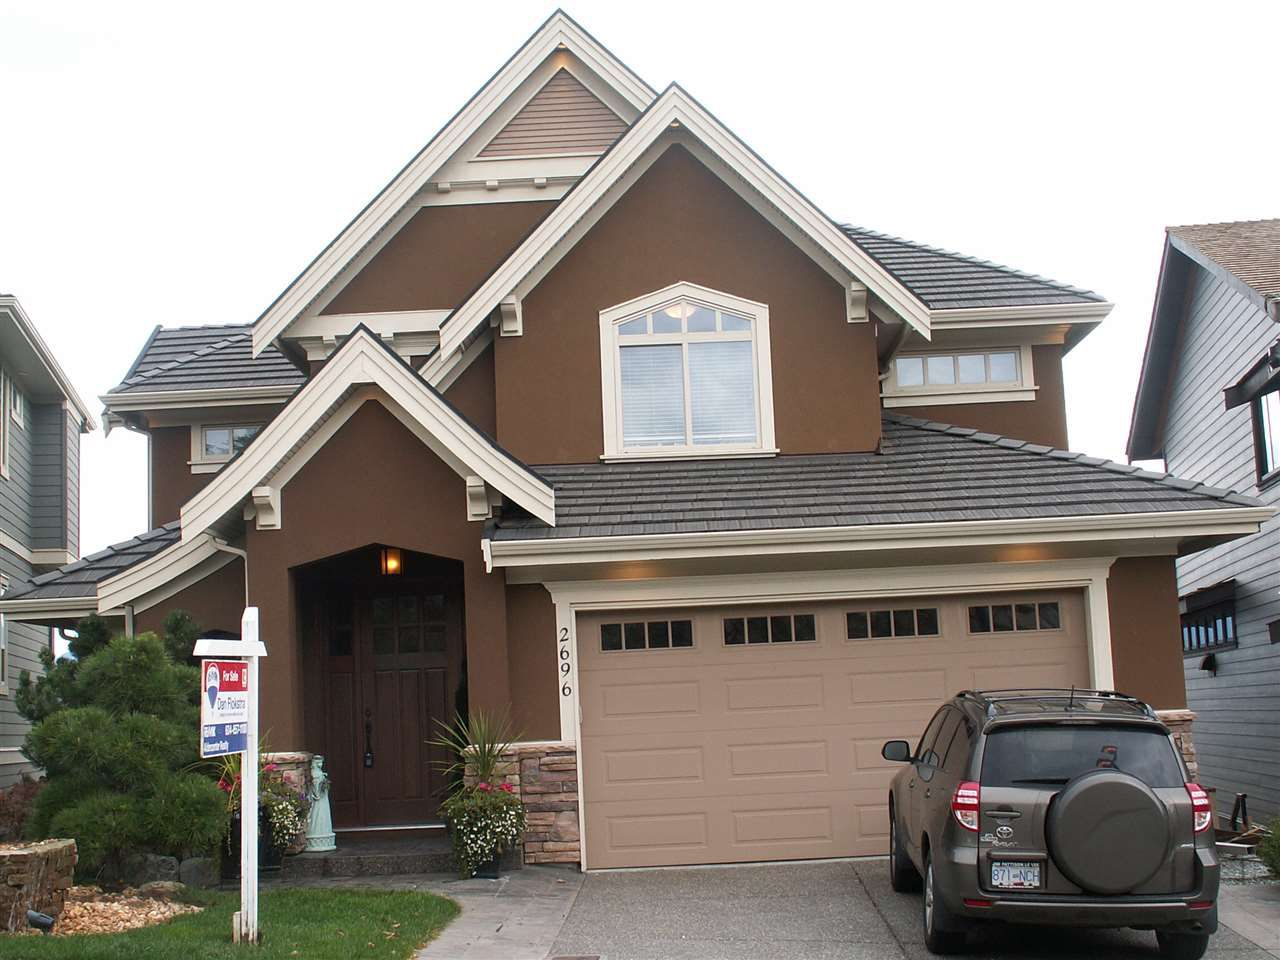 Main Photo: 2696 MAHOGANY DRIVE in Abbotsford: Abbotsford East House for sale : MLS®# R2005873